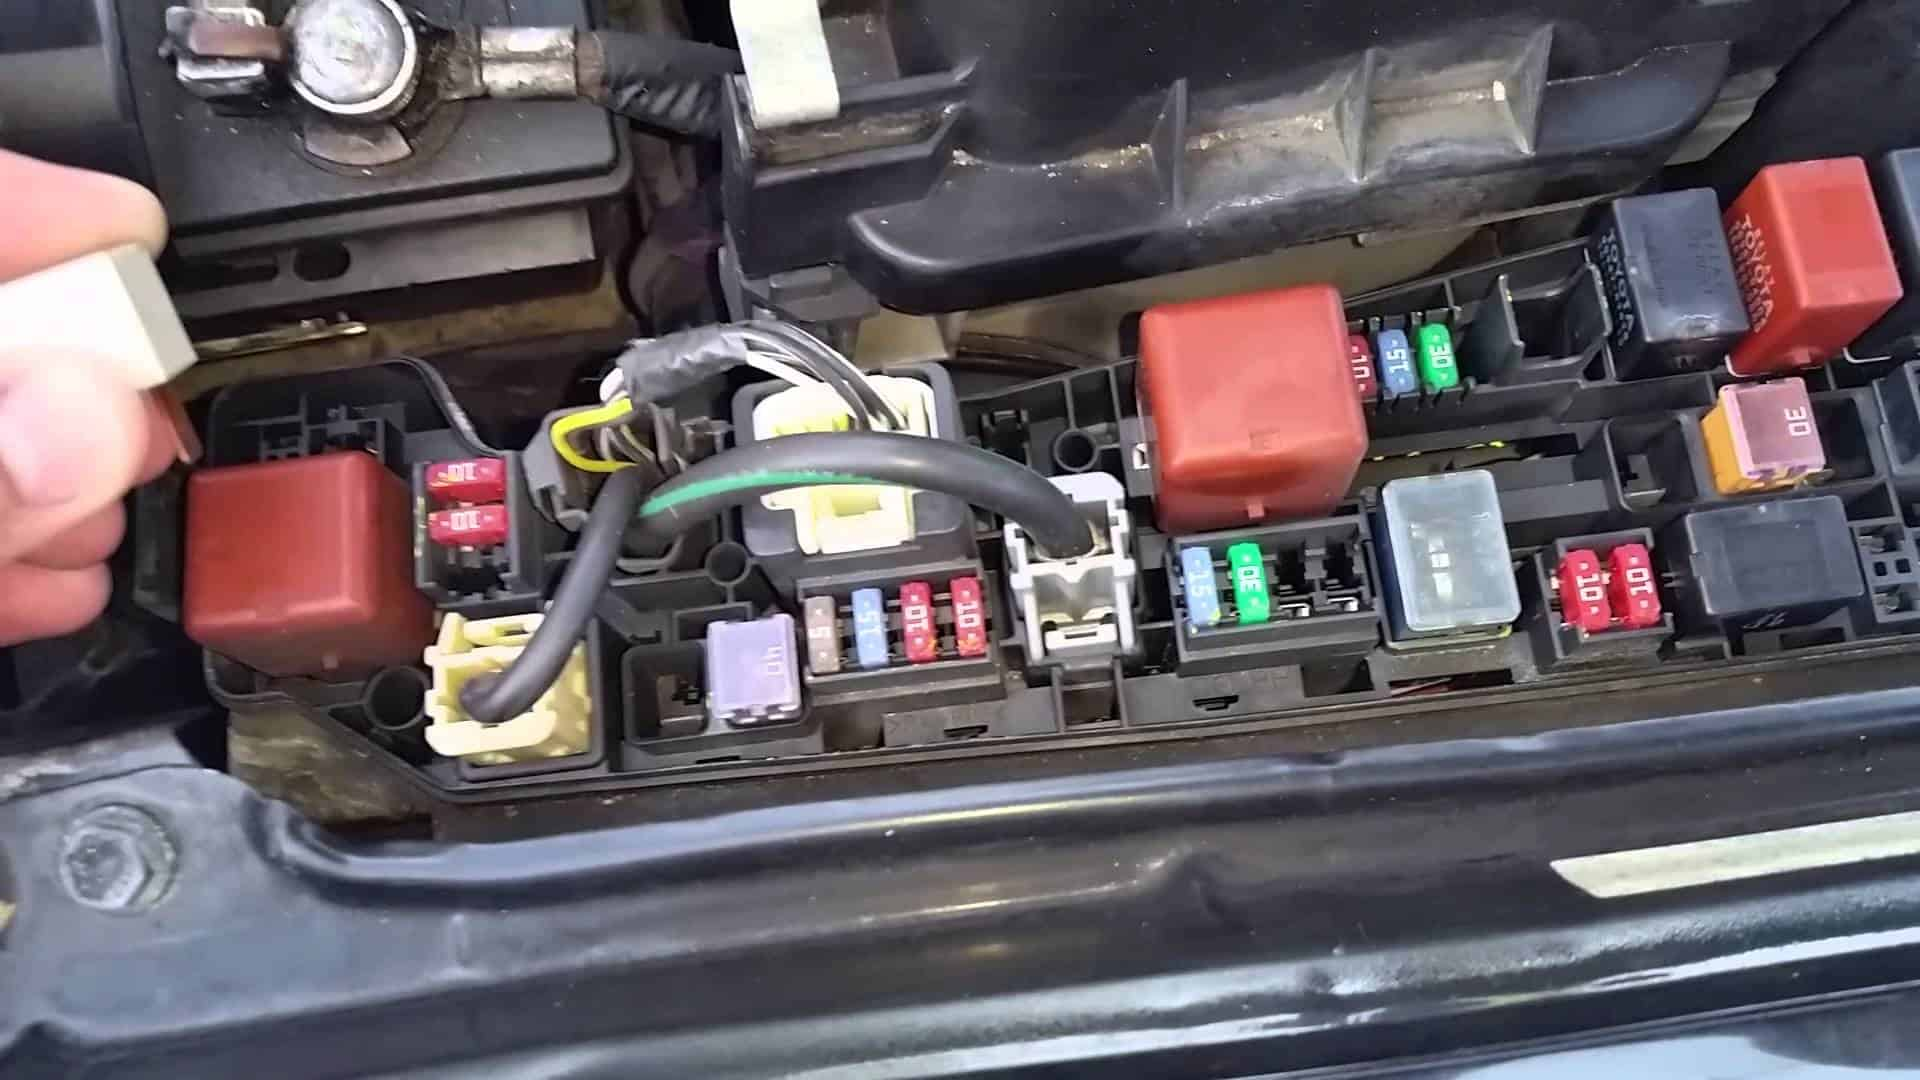 1996 Honda Passport Fuse Box Diagram What Should I Do If Ac Compressor Clutch Is Not Engaging